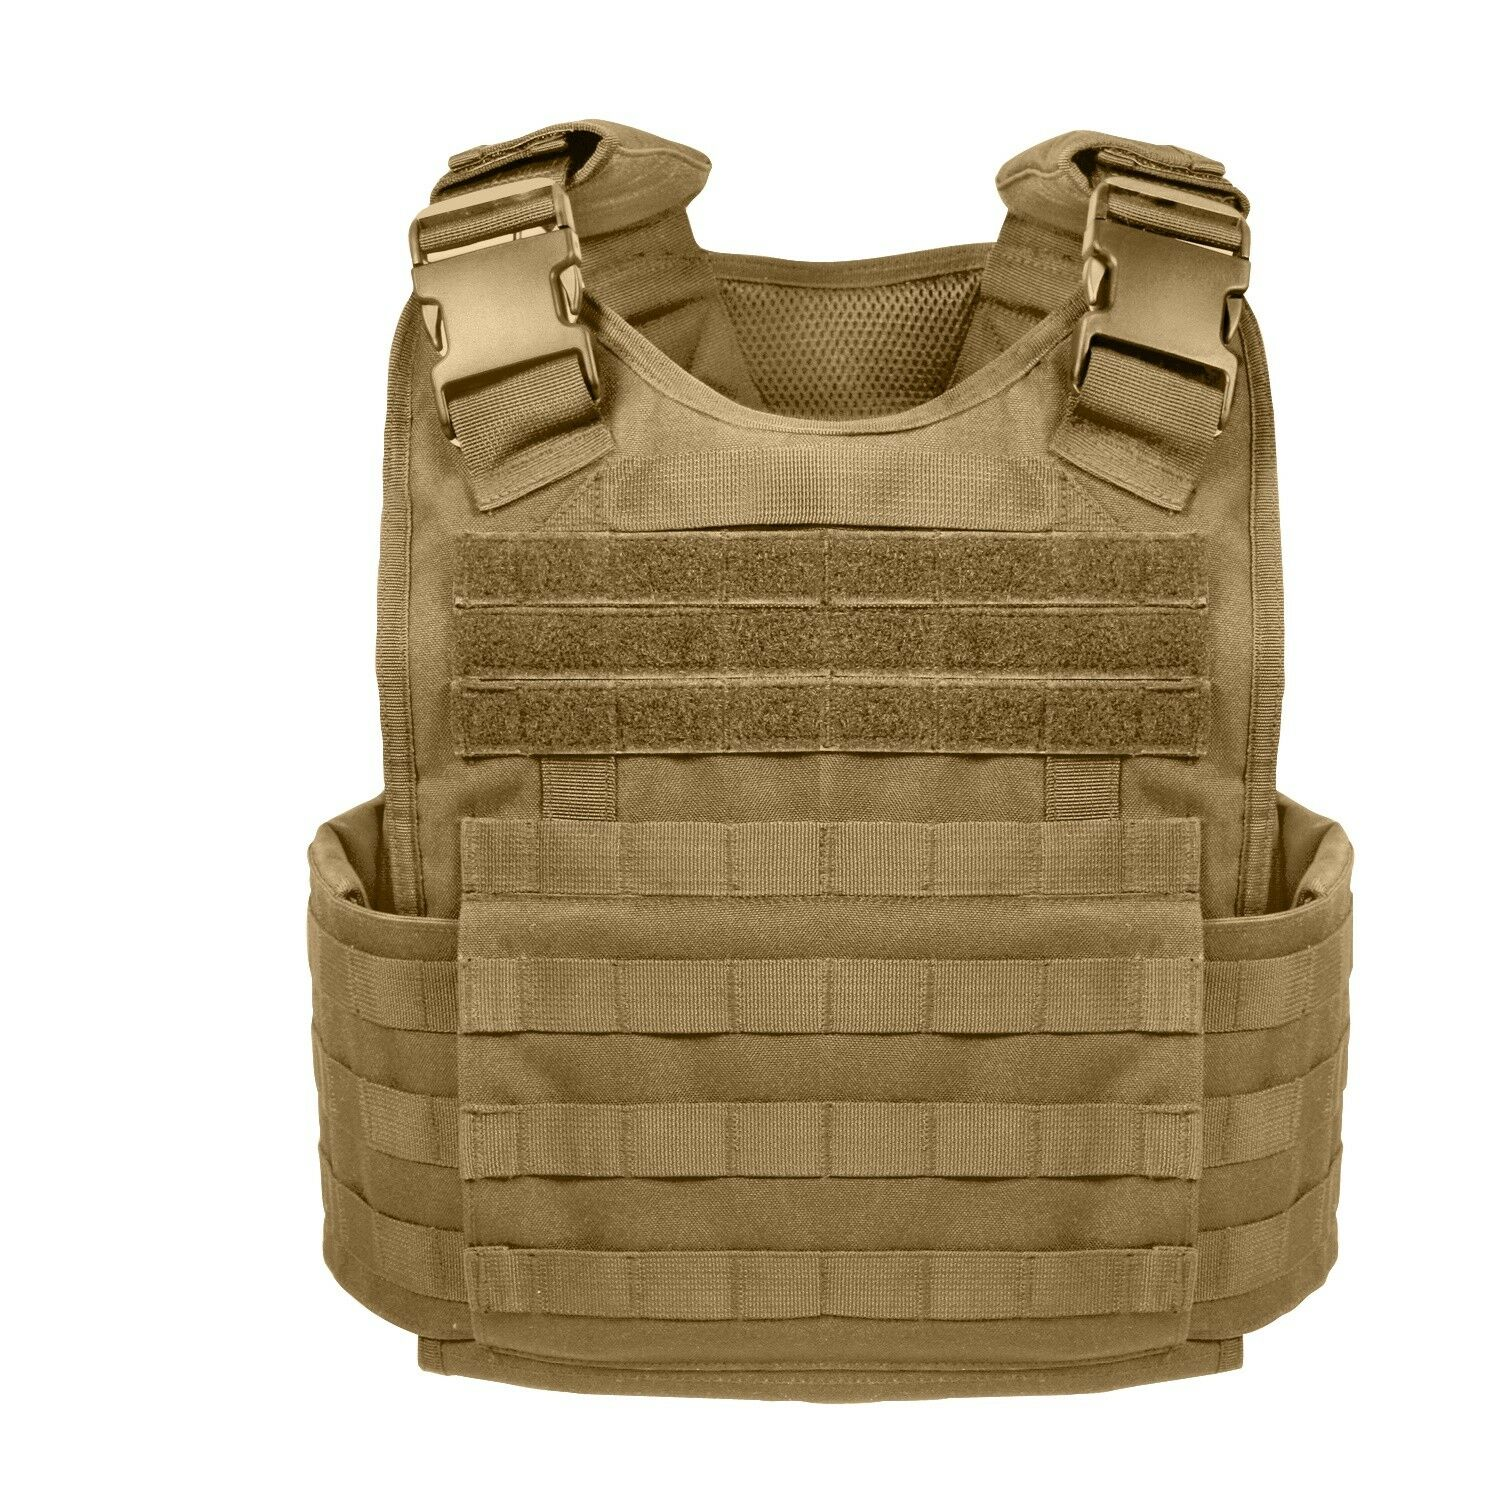 Coyote Brown Military MOLLE Tactical Plate Carrier Assault Vest redhco 8923